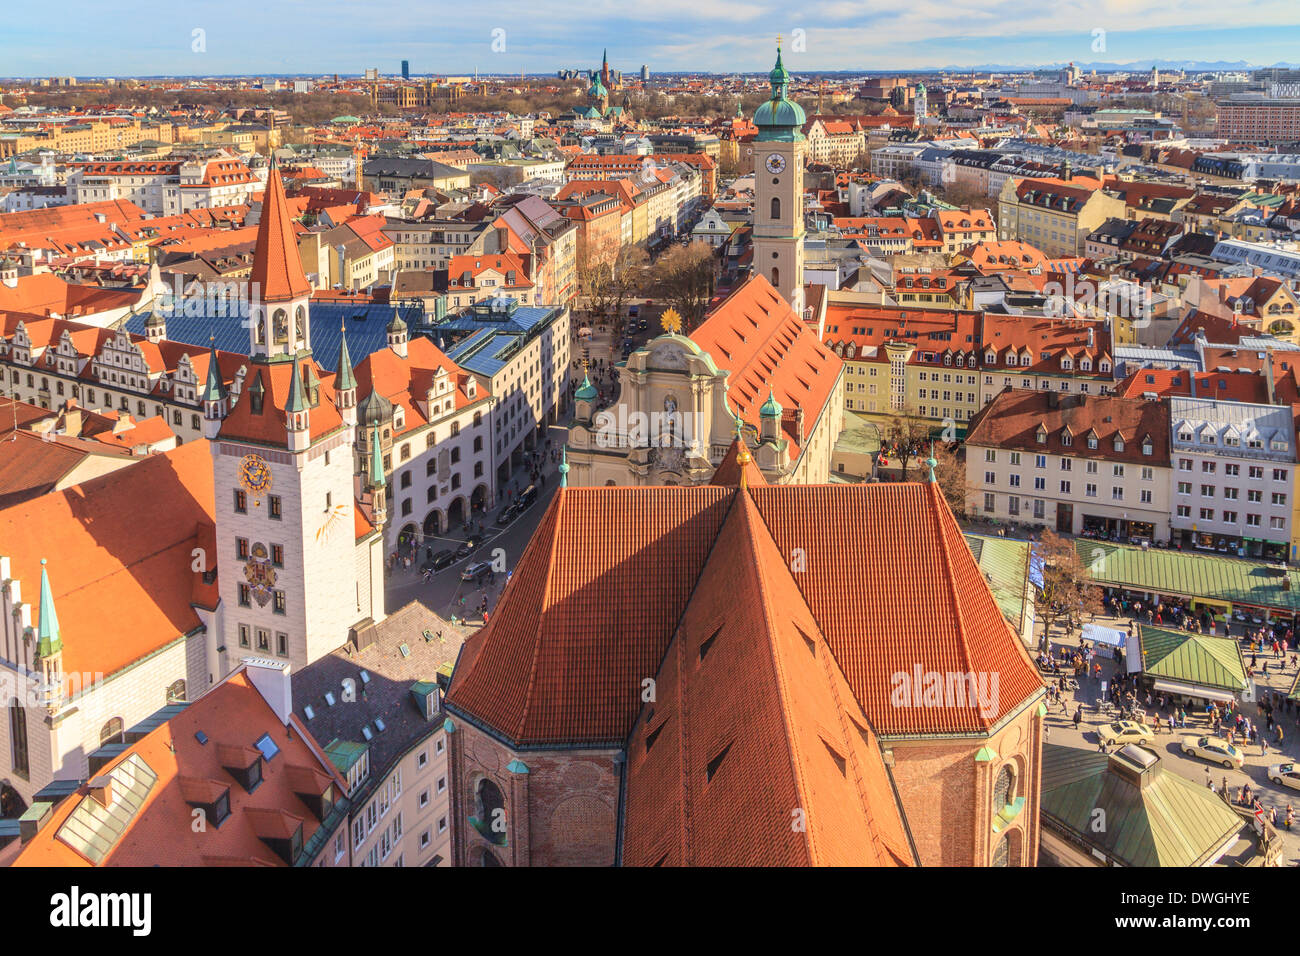 Munich Panorama with old city hall, Holy Spirit Church and Viktualienmarkt, Bavaria, Germany - Stock Image